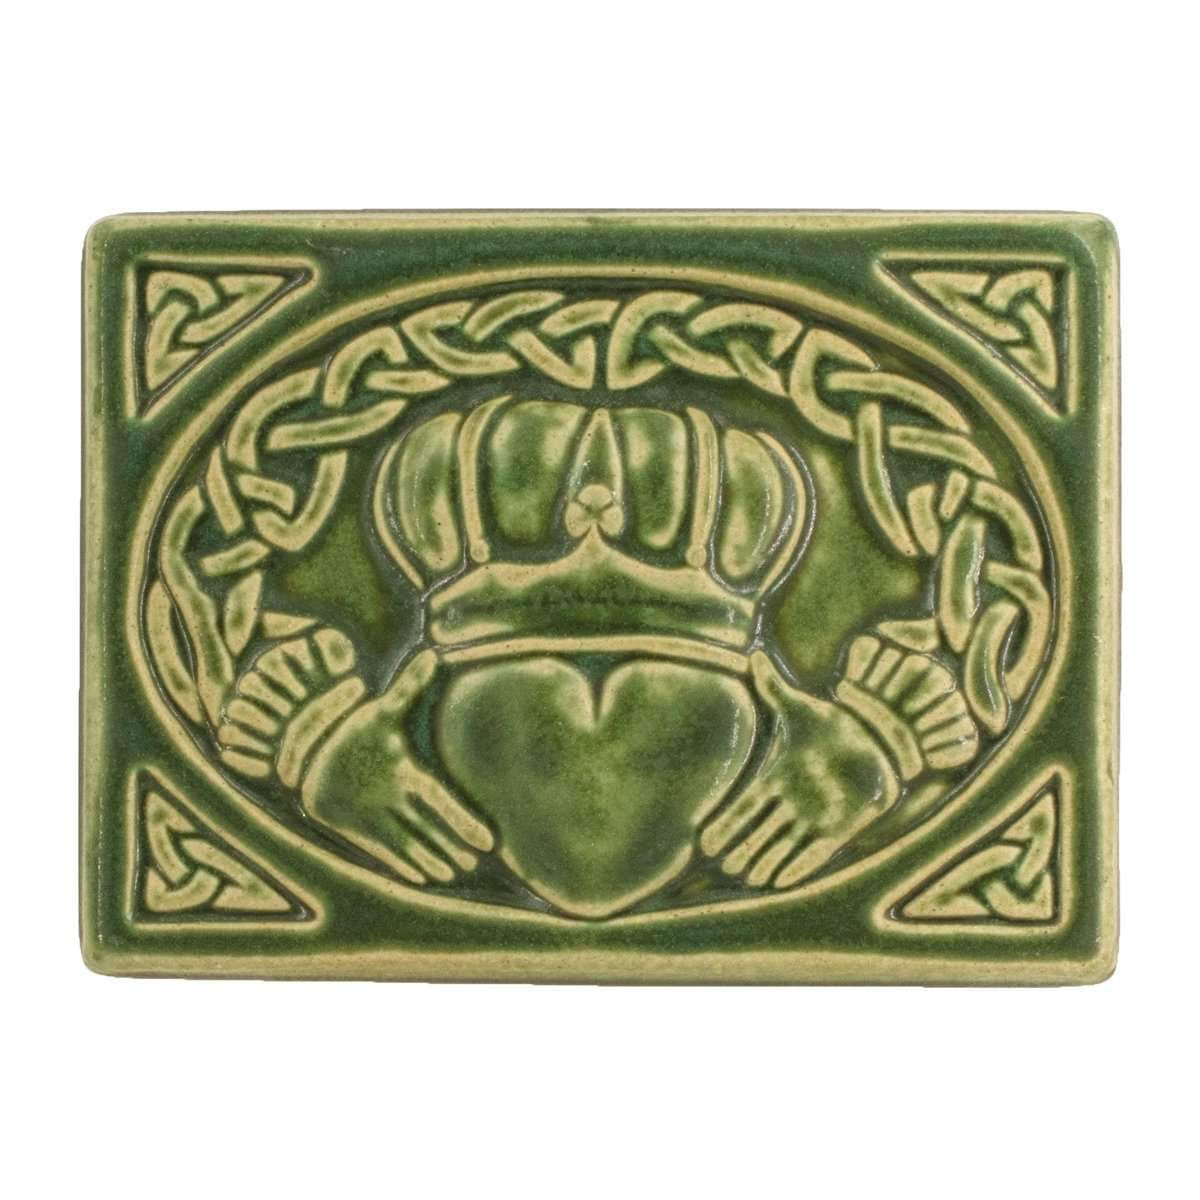 6x8 Claddagh Pewabic Tile - Leaf - Pure Detroit